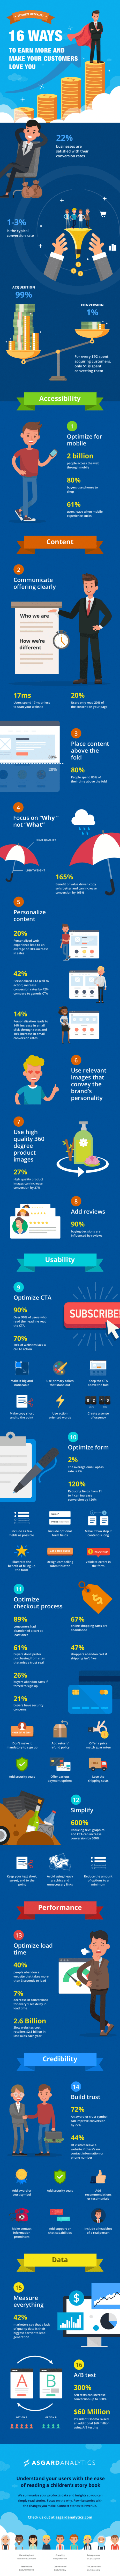 infographie conversion clients